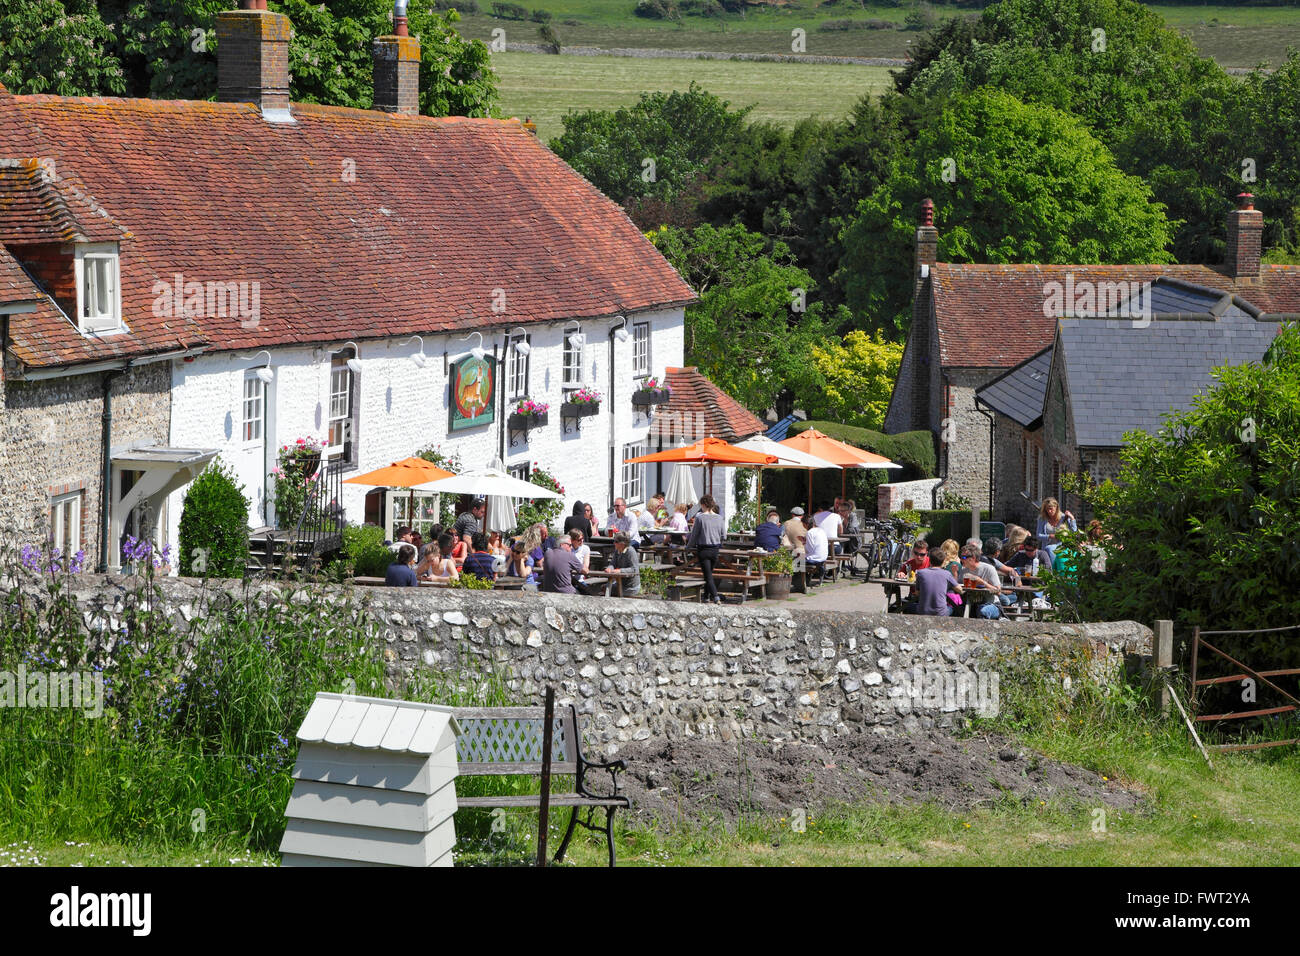 The picturesque Tiger Inn, East Dean, a rural country village pub nestling in the South Downs, East Sussex, England, - Stock Image